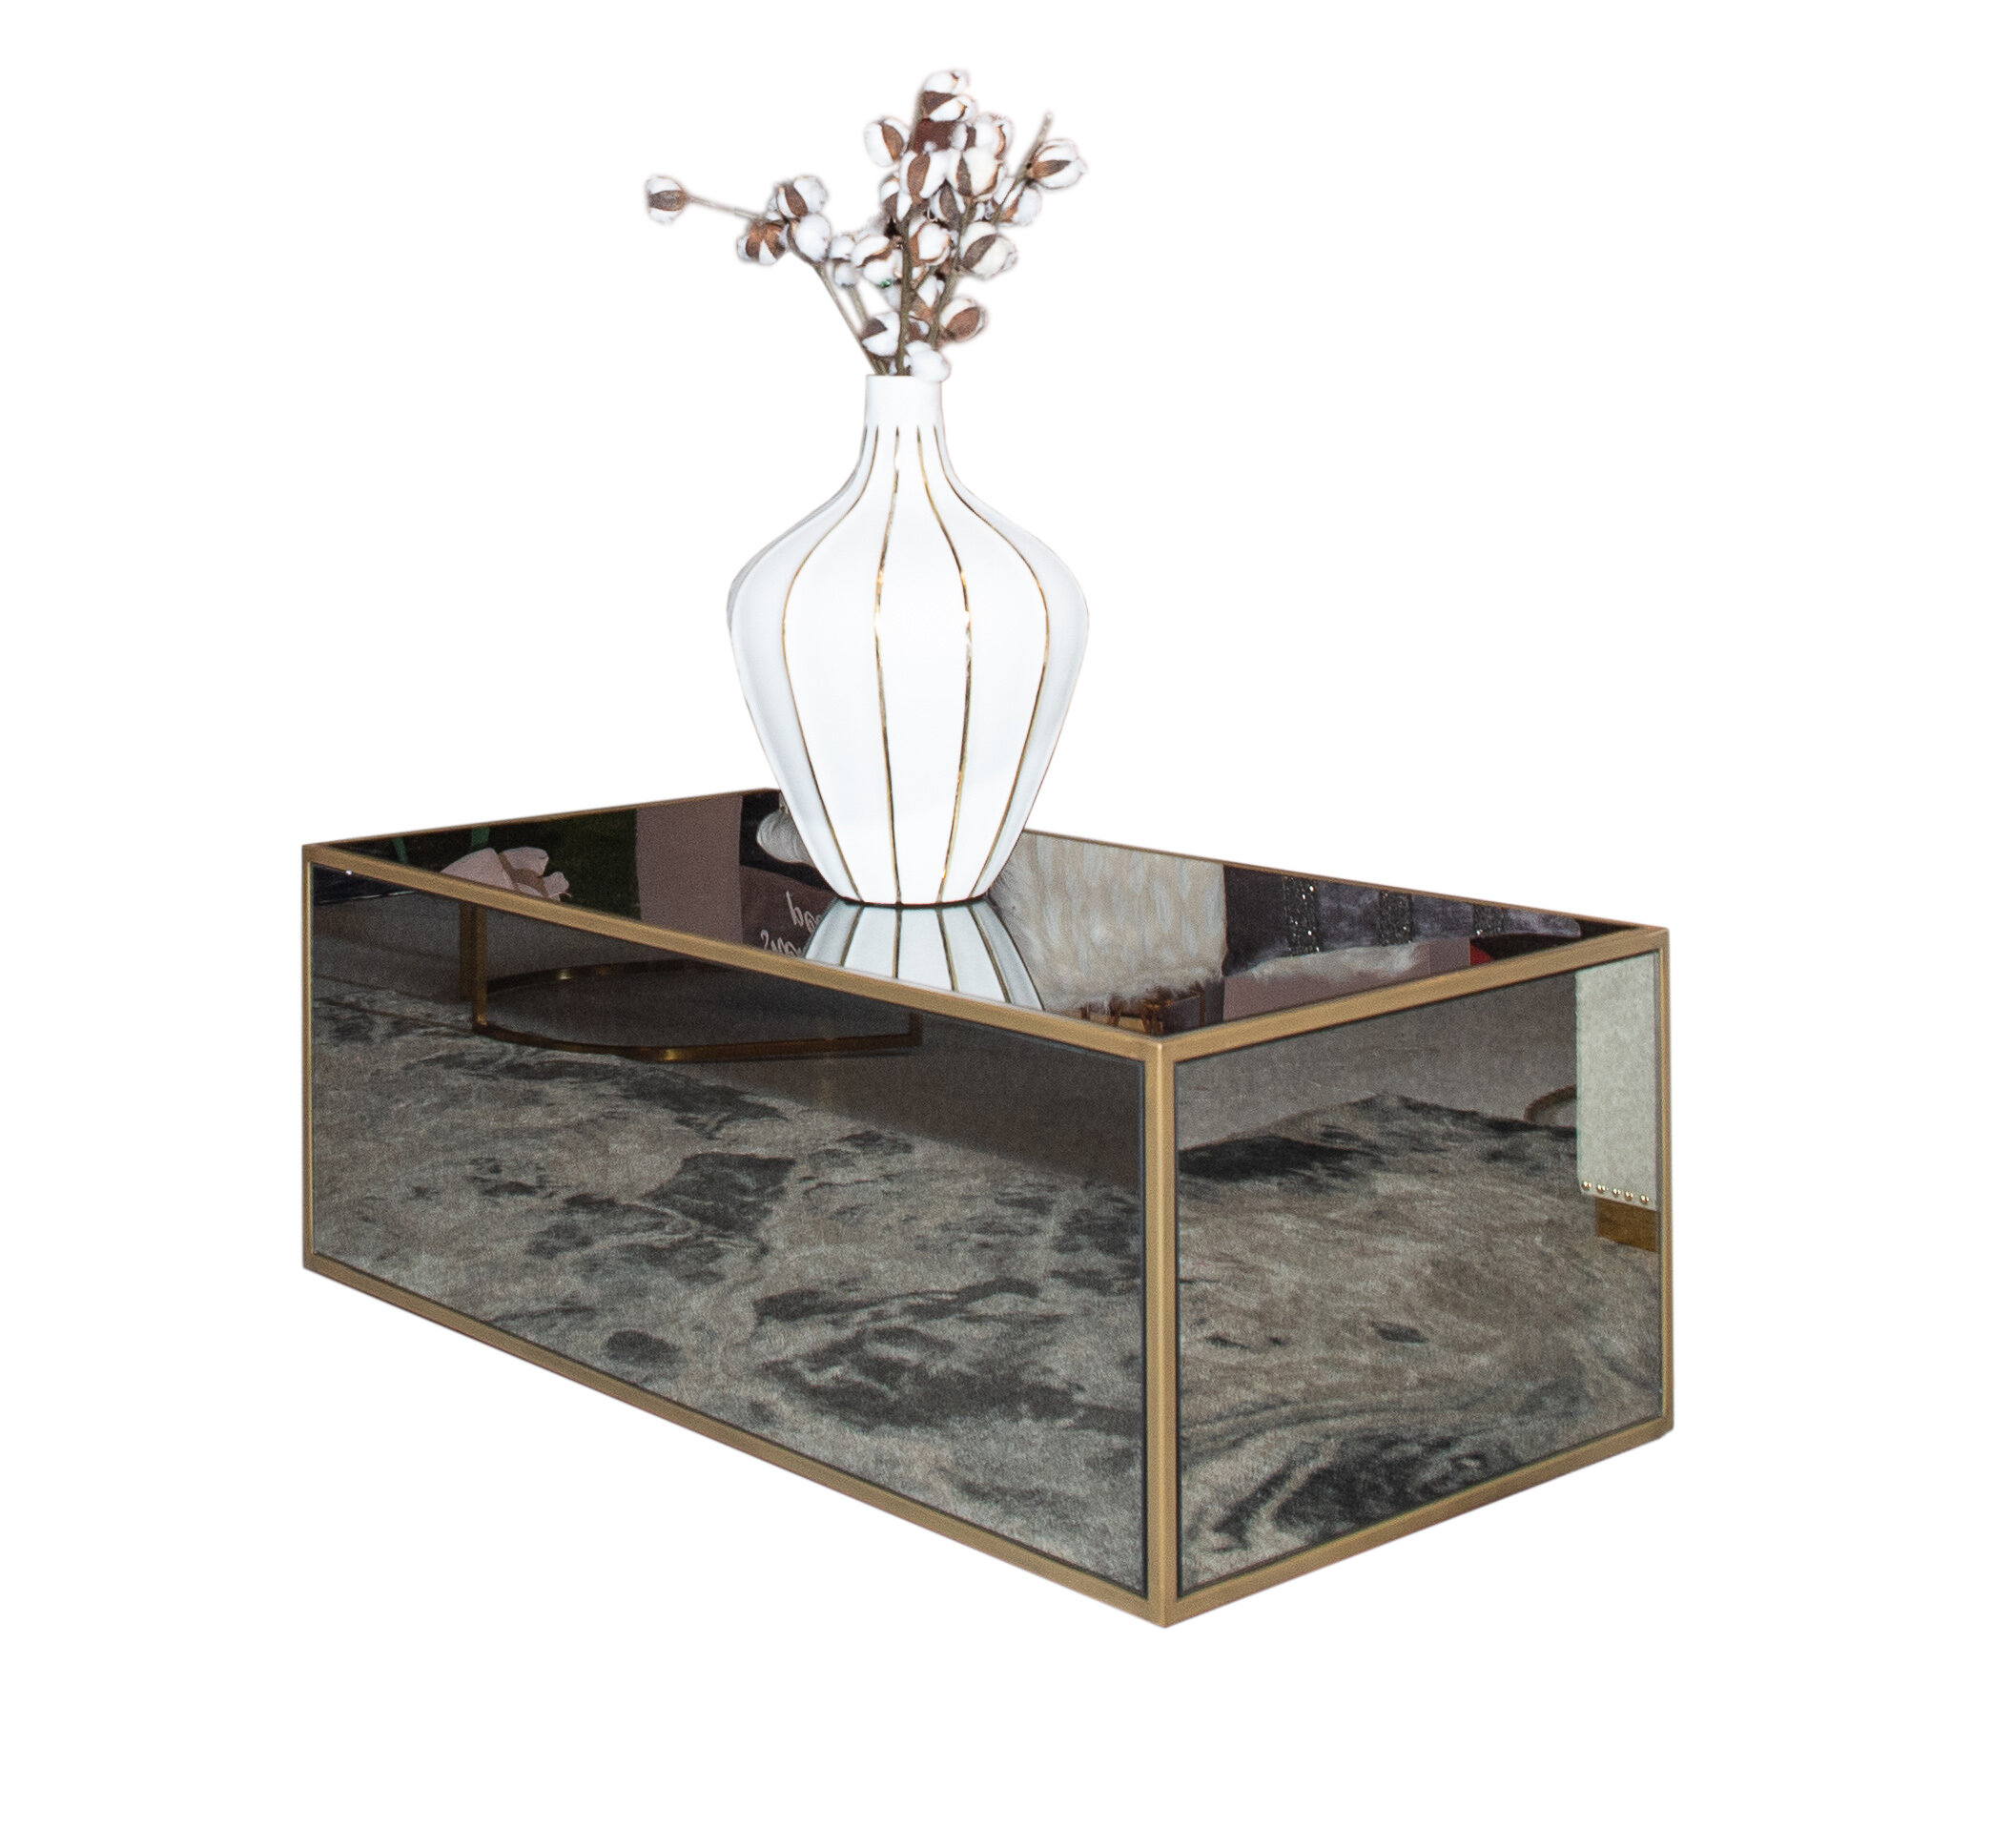 Inspiremehomedecor Lana Mirrored Coffee Table Reviews